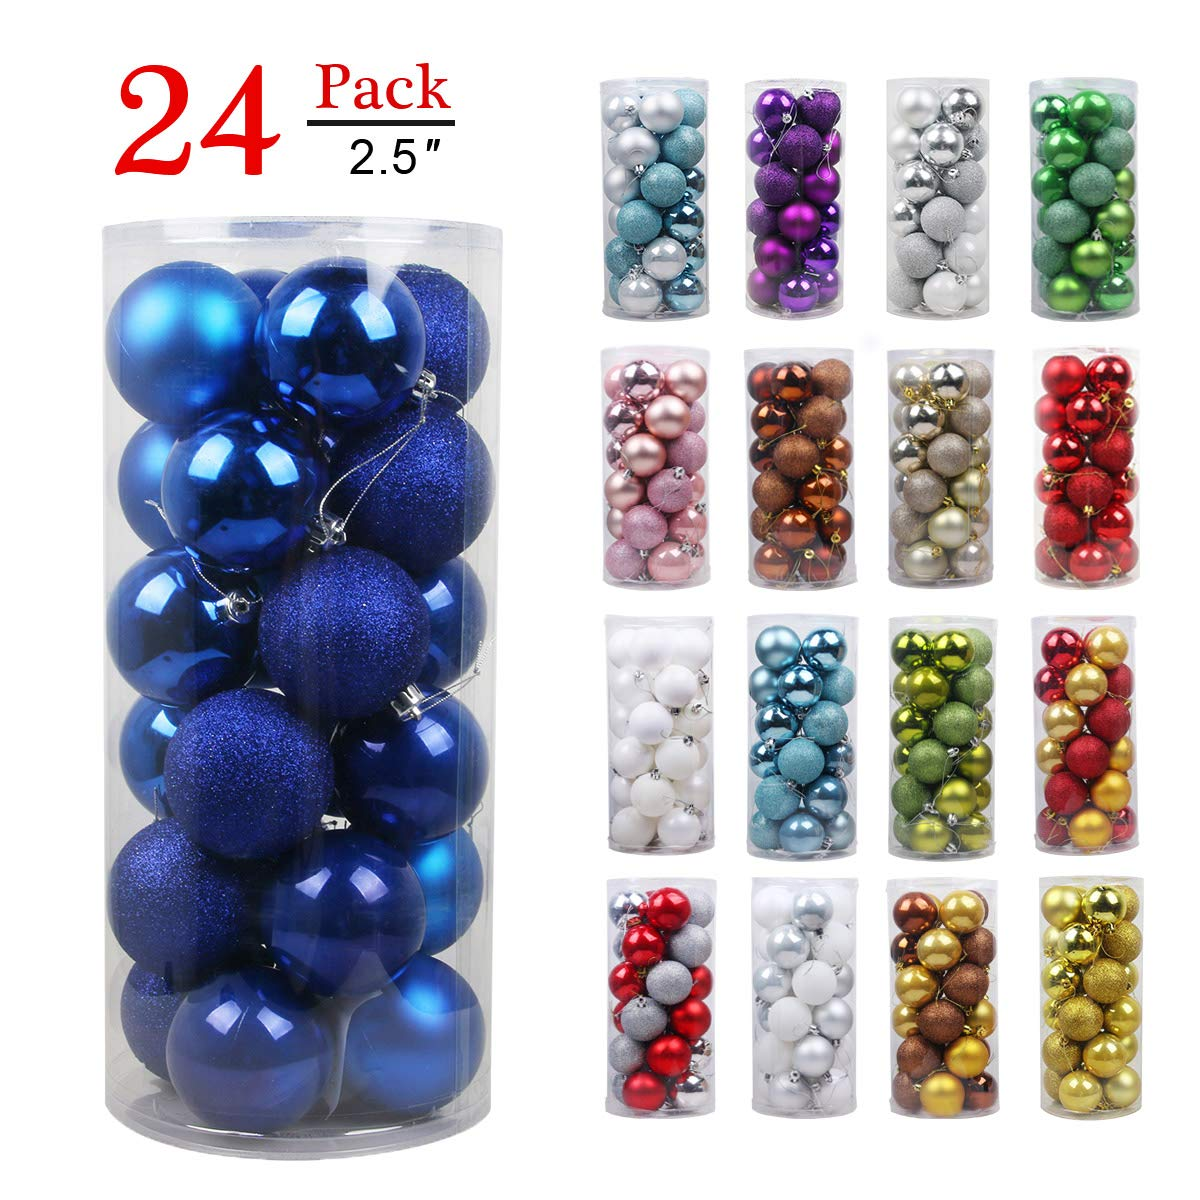 Christmas Balls Ornaments for Xmas Tree-Shatterproof Christmas Tree Decorations Large Hanging Ball Blue 2.5''